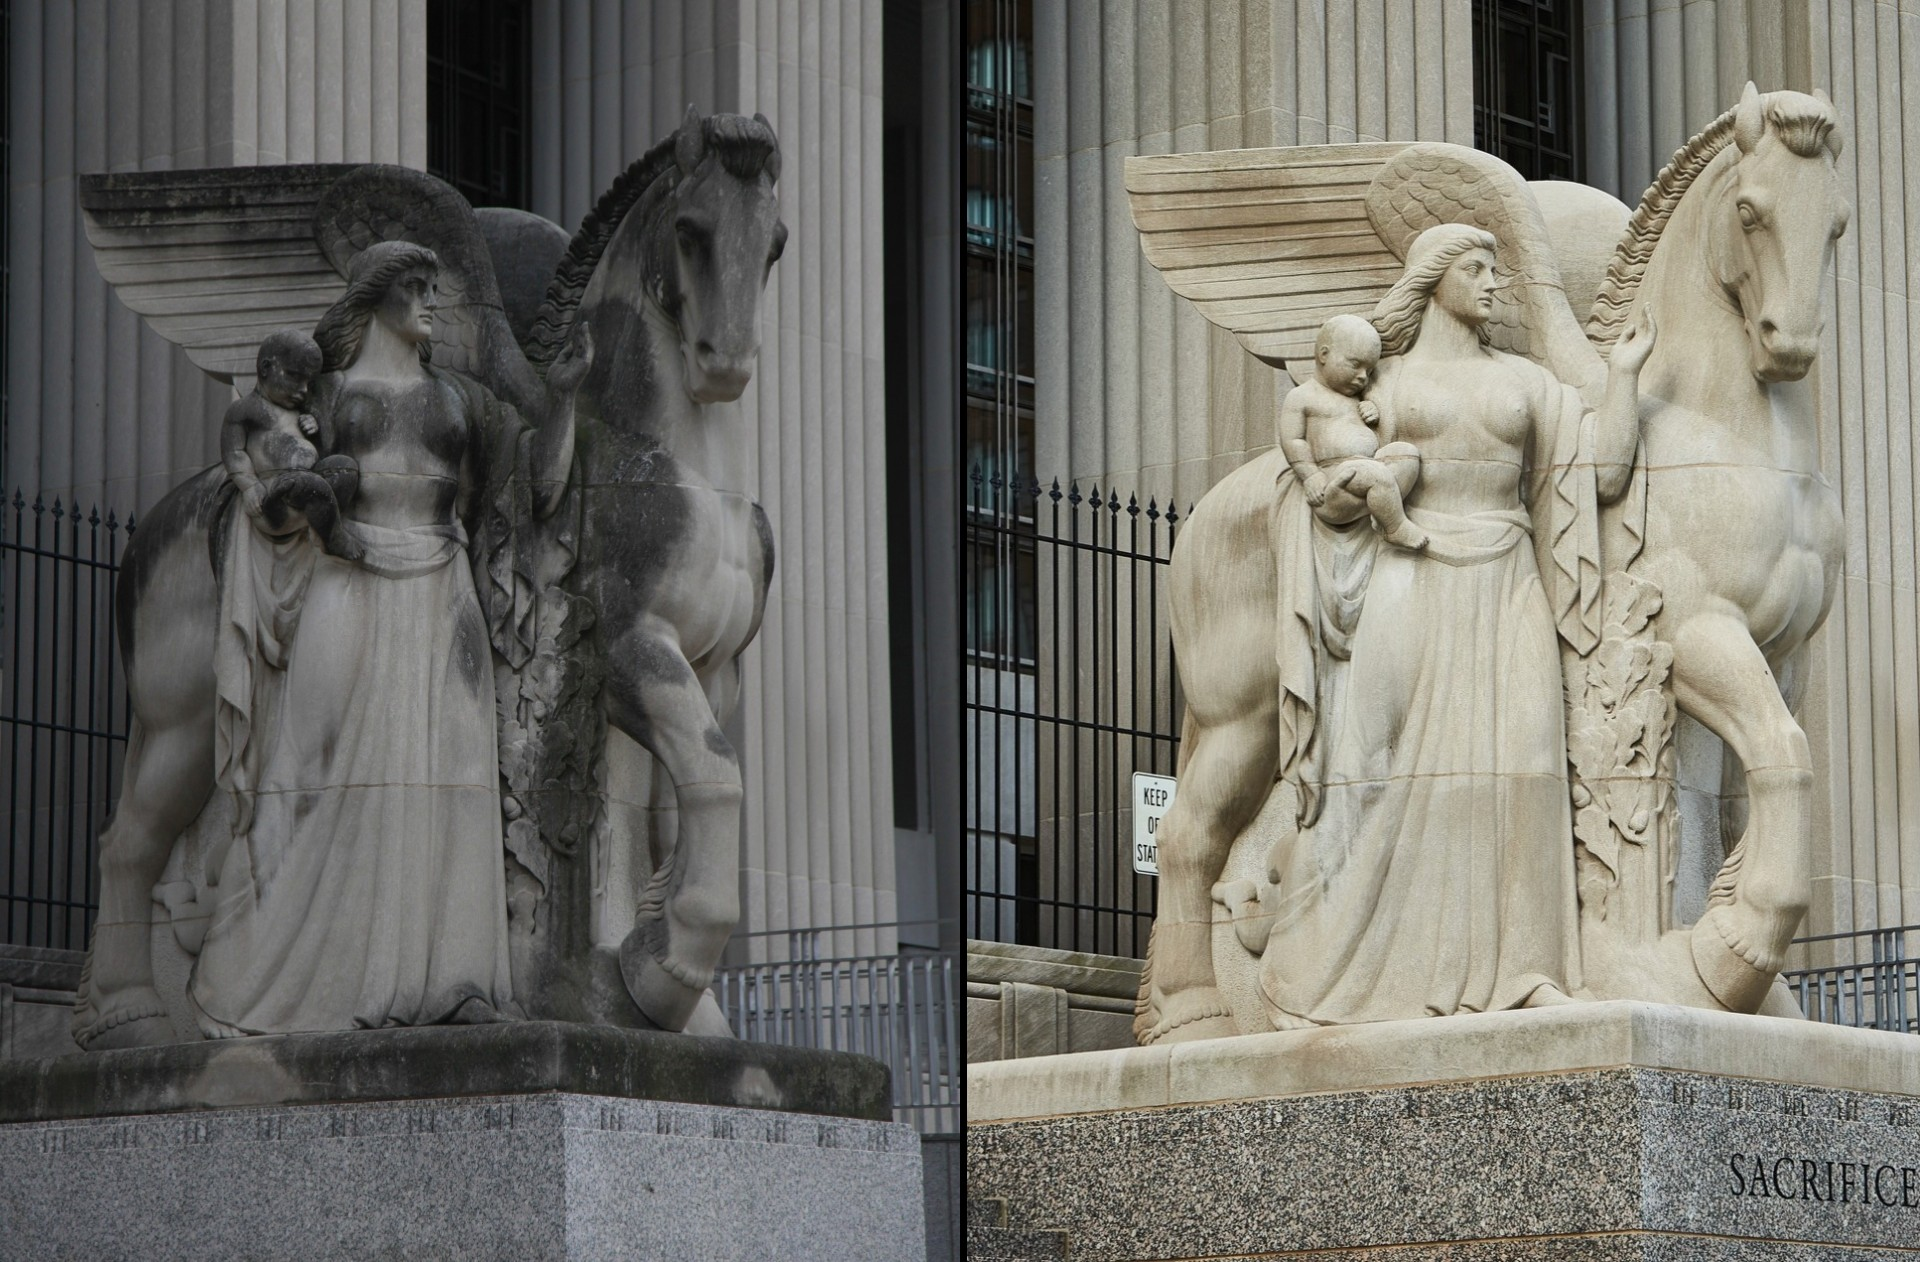 A side-by-side view of the same statuary sculpture before and after a public-private partnership allowed for a cleaning. On the left, the statue is darkened with spots of grime, while on the right it is cleaned and dazzling.